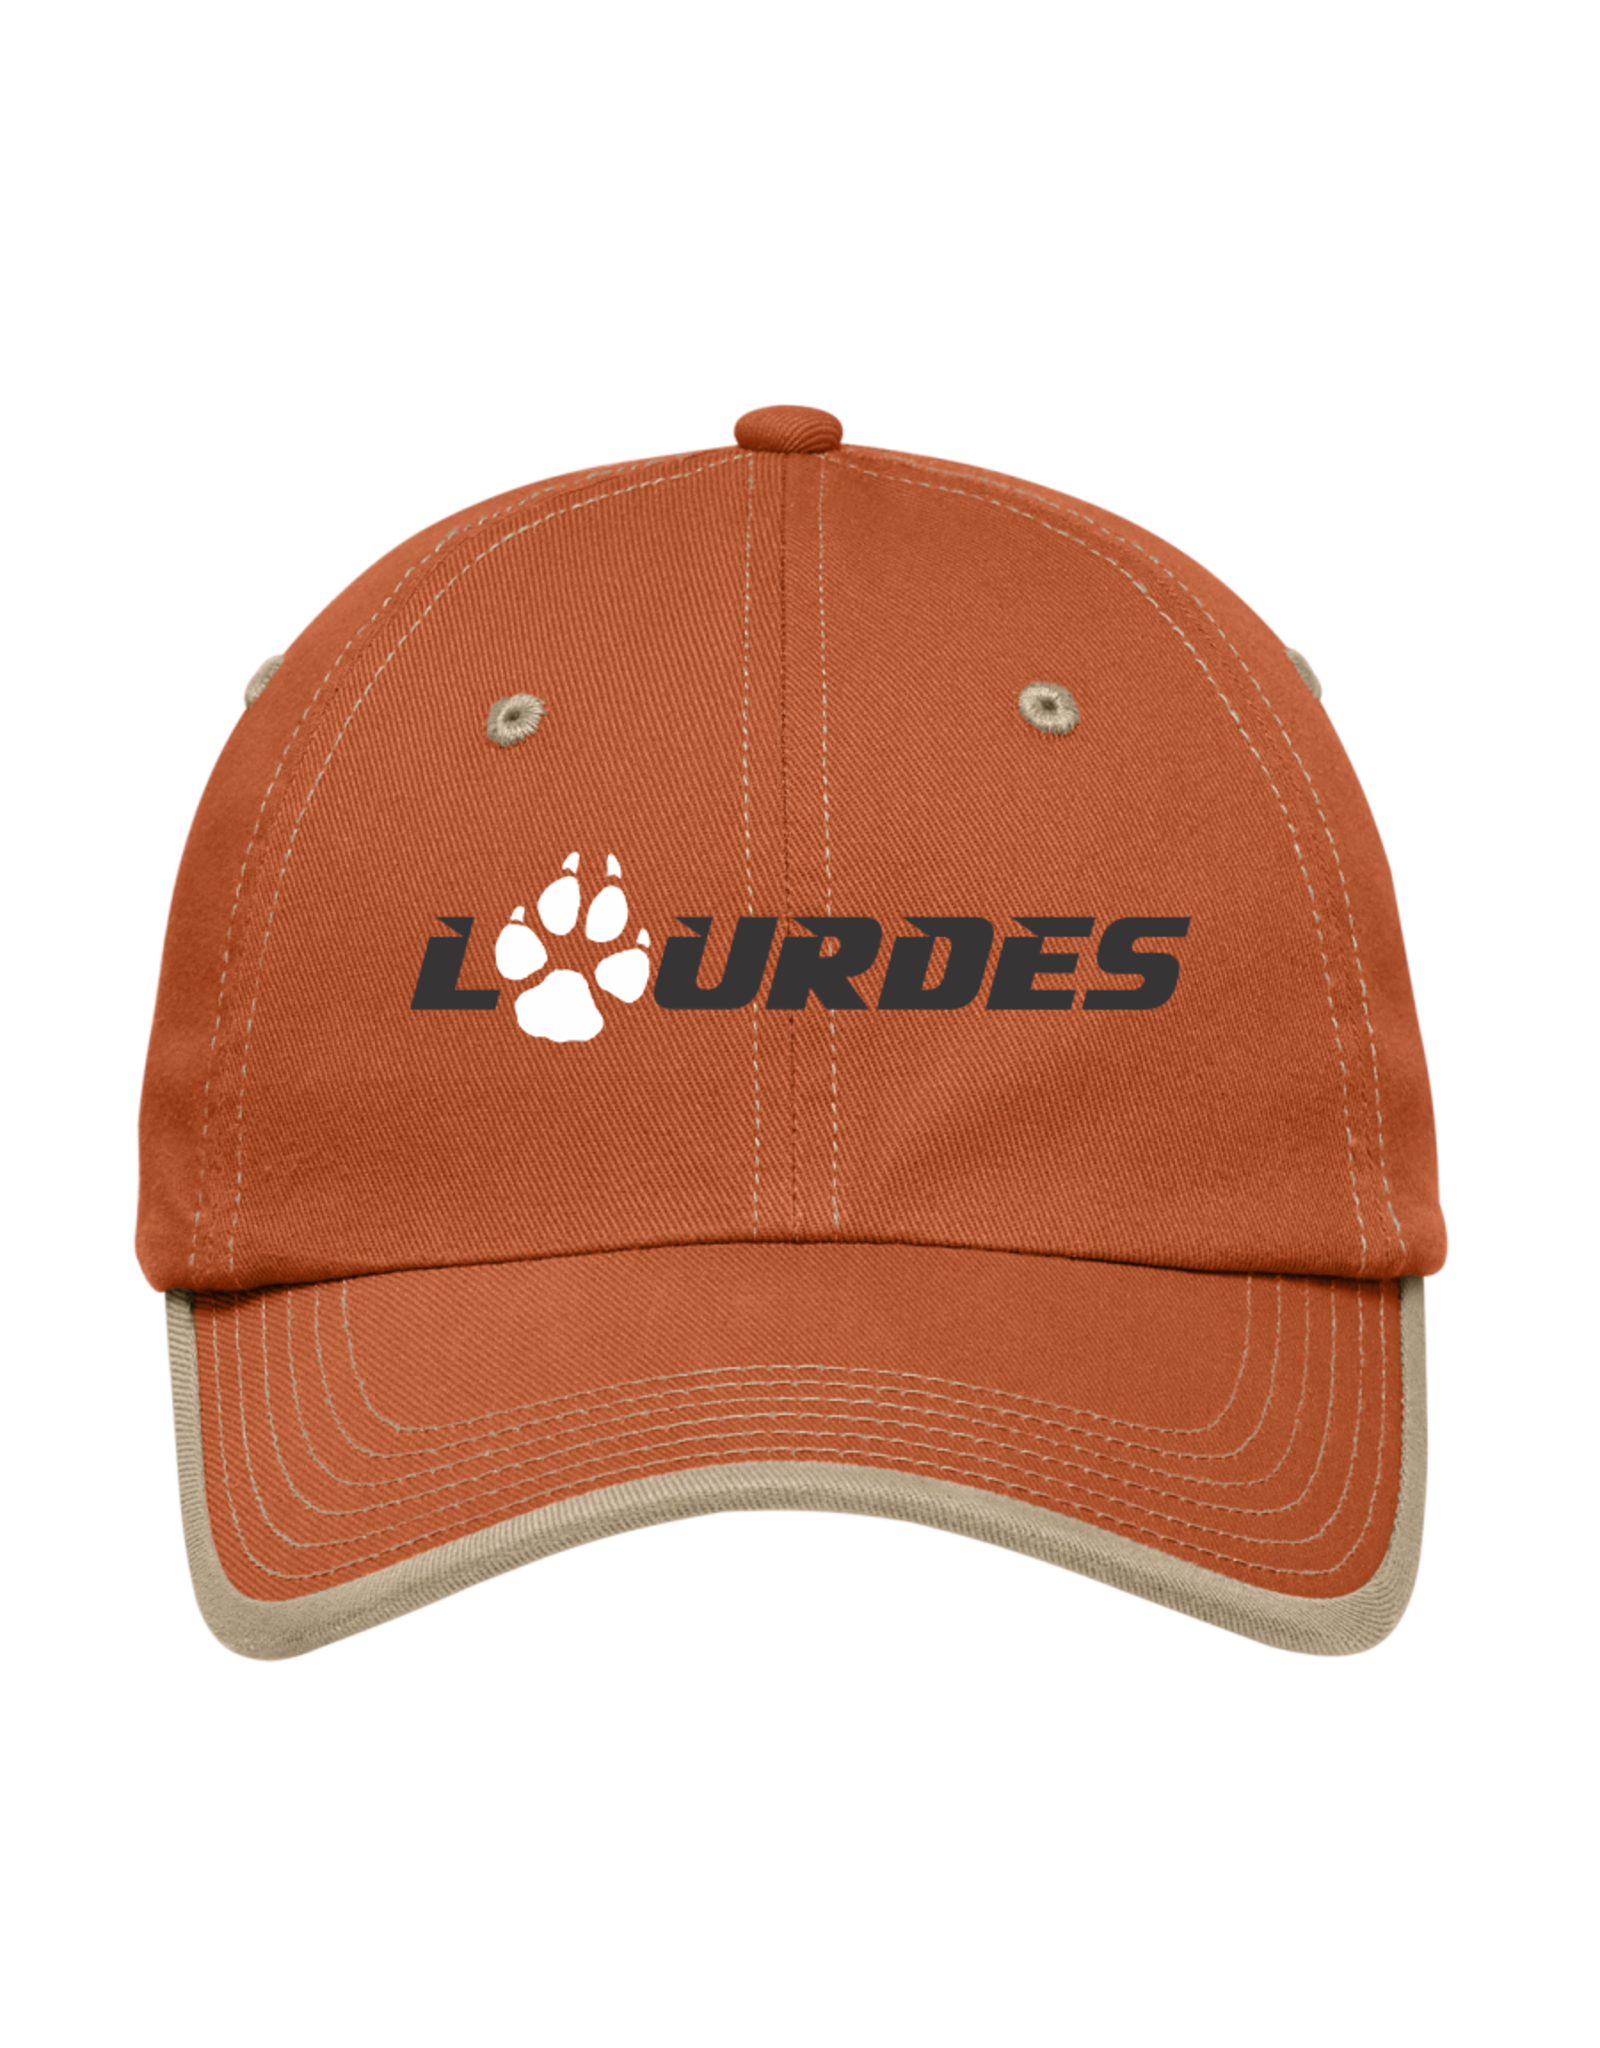 Port & Co Port Authority® Contrast Stitch Cap | Lourdes w/paw - Burnt Orange *